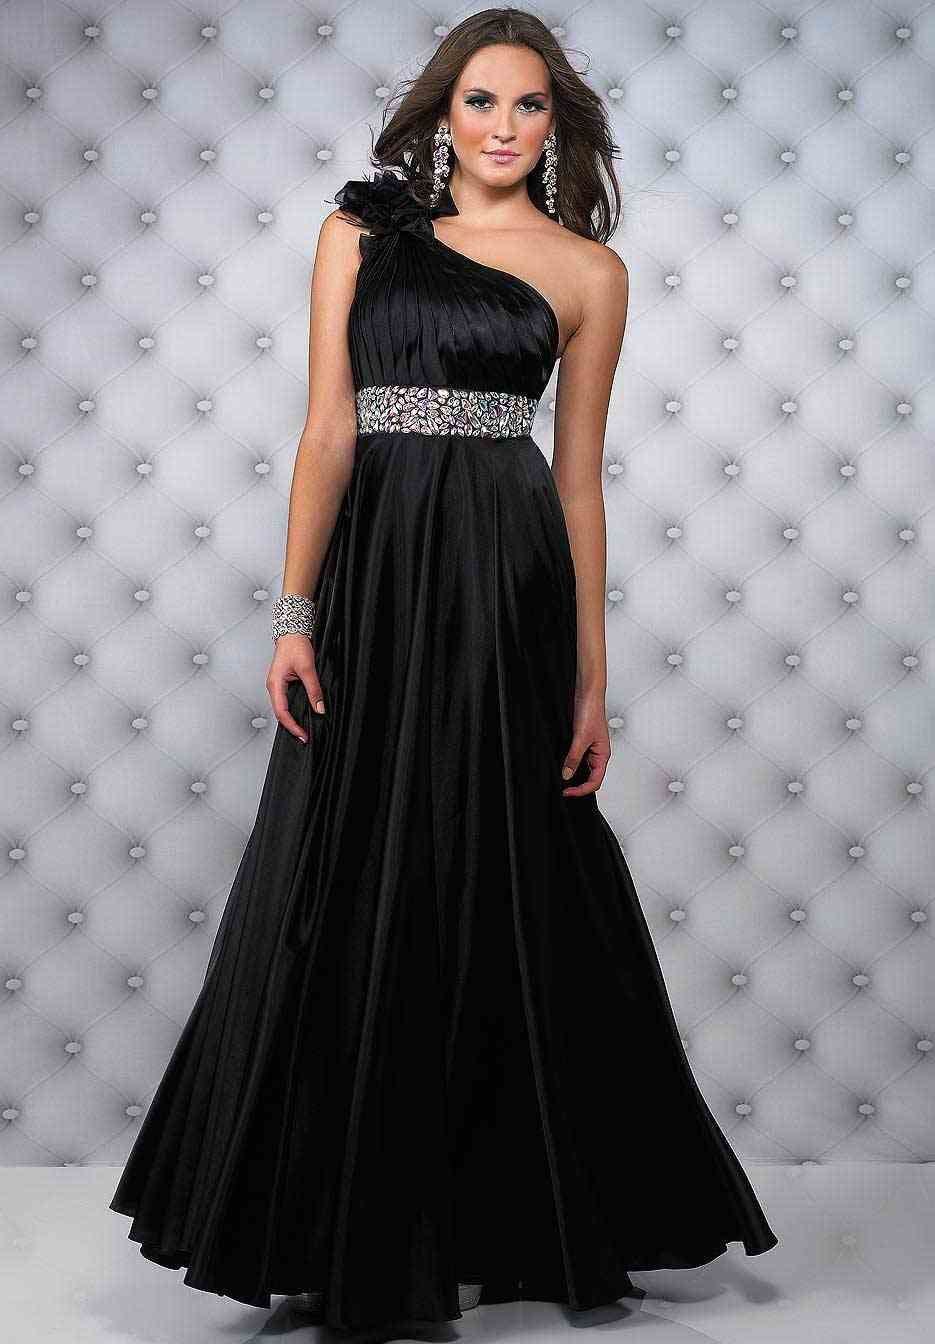 Prom Dresses for Prom 2015 | The Prom Dress Shop